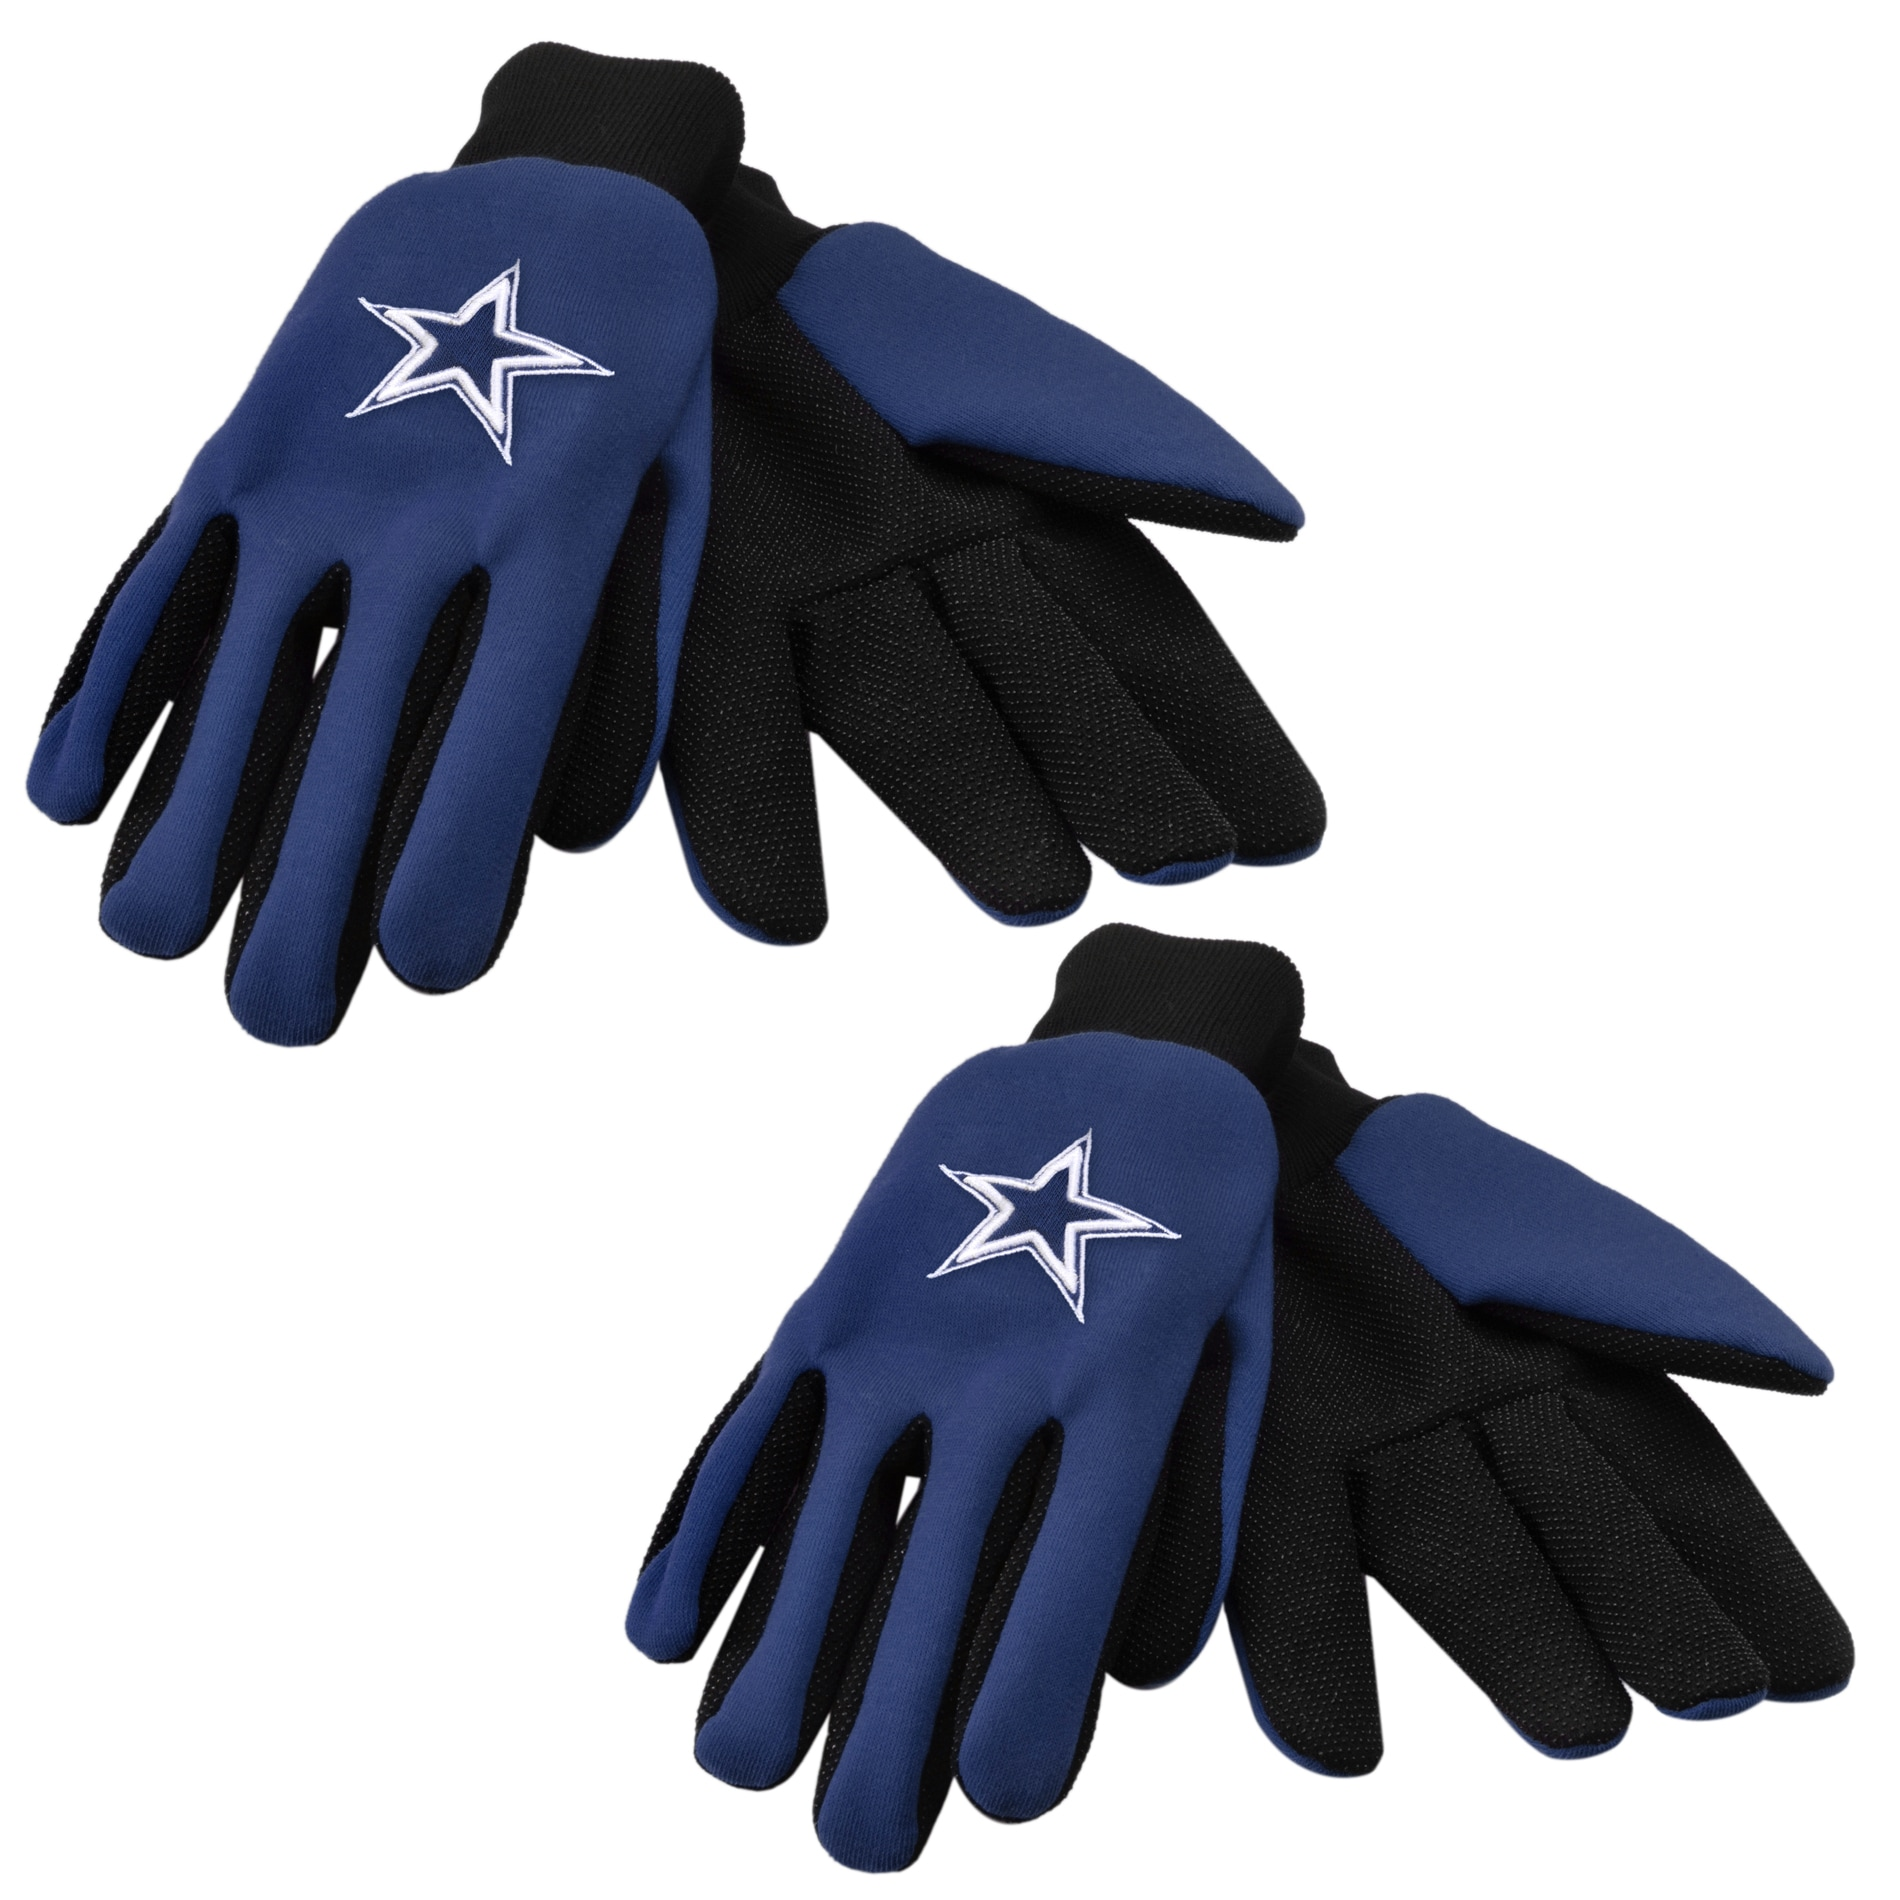 Dallas Cowboys Two-tone Work Gloves (Set of 2 Pair)